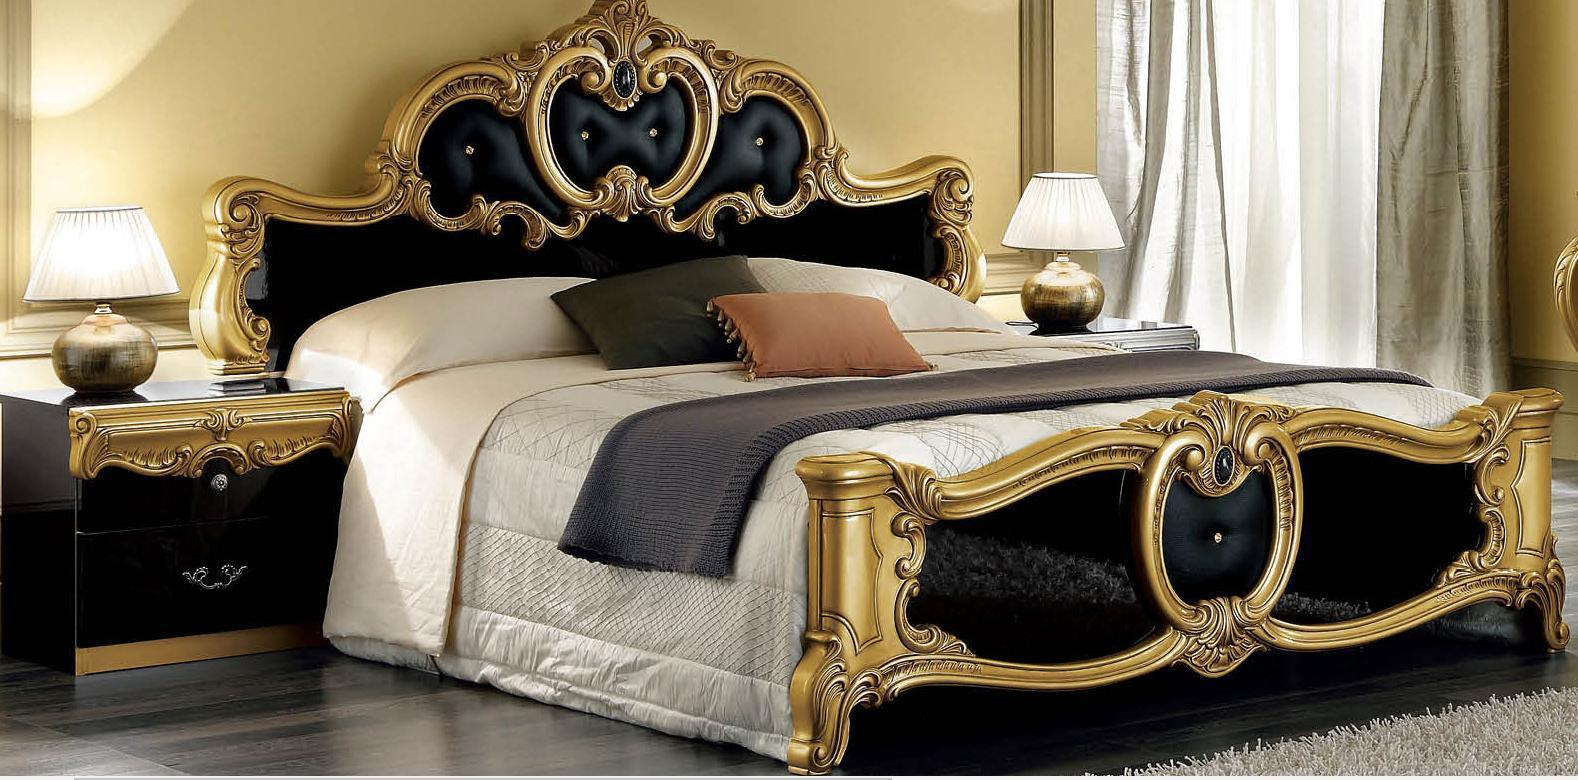 Esf Barocco Black And Gold Queen Size Bedroom Set 5pcs Made In Italy Classic